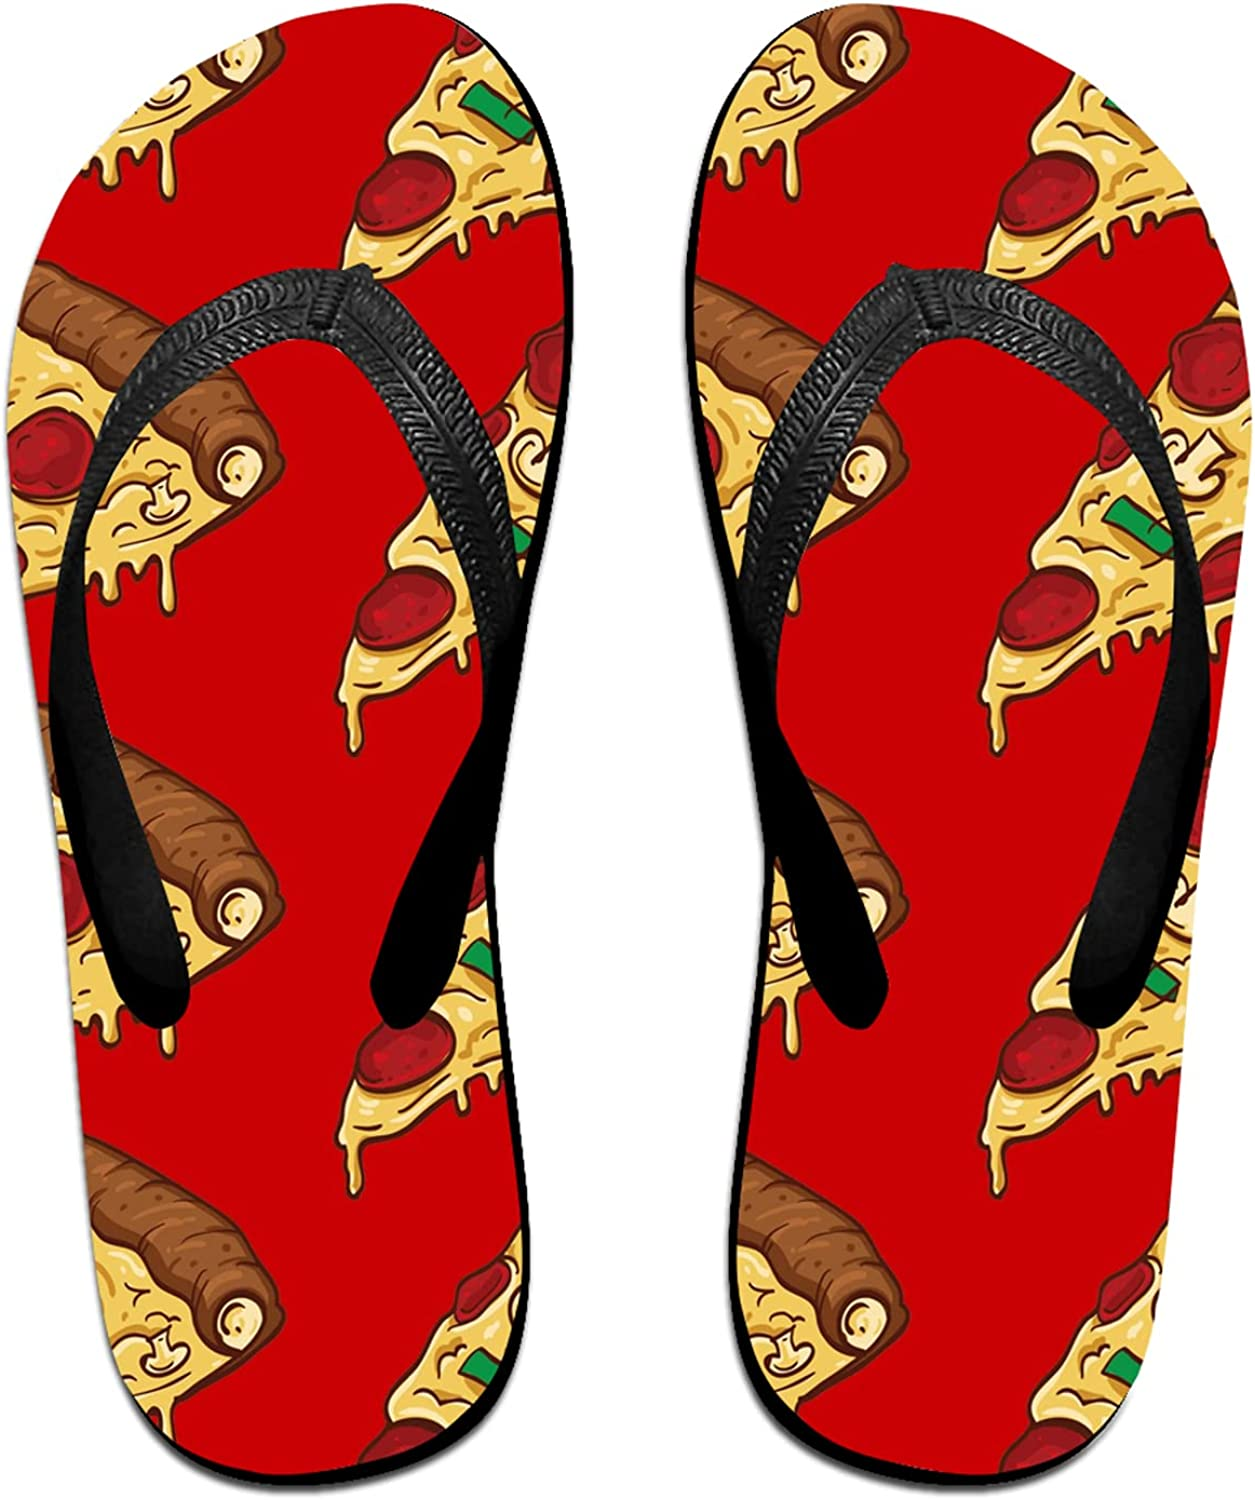 Women's Max 47% OFF Men's Flip Flop Slippers Adu Red Colorful Pizza Slices Translated